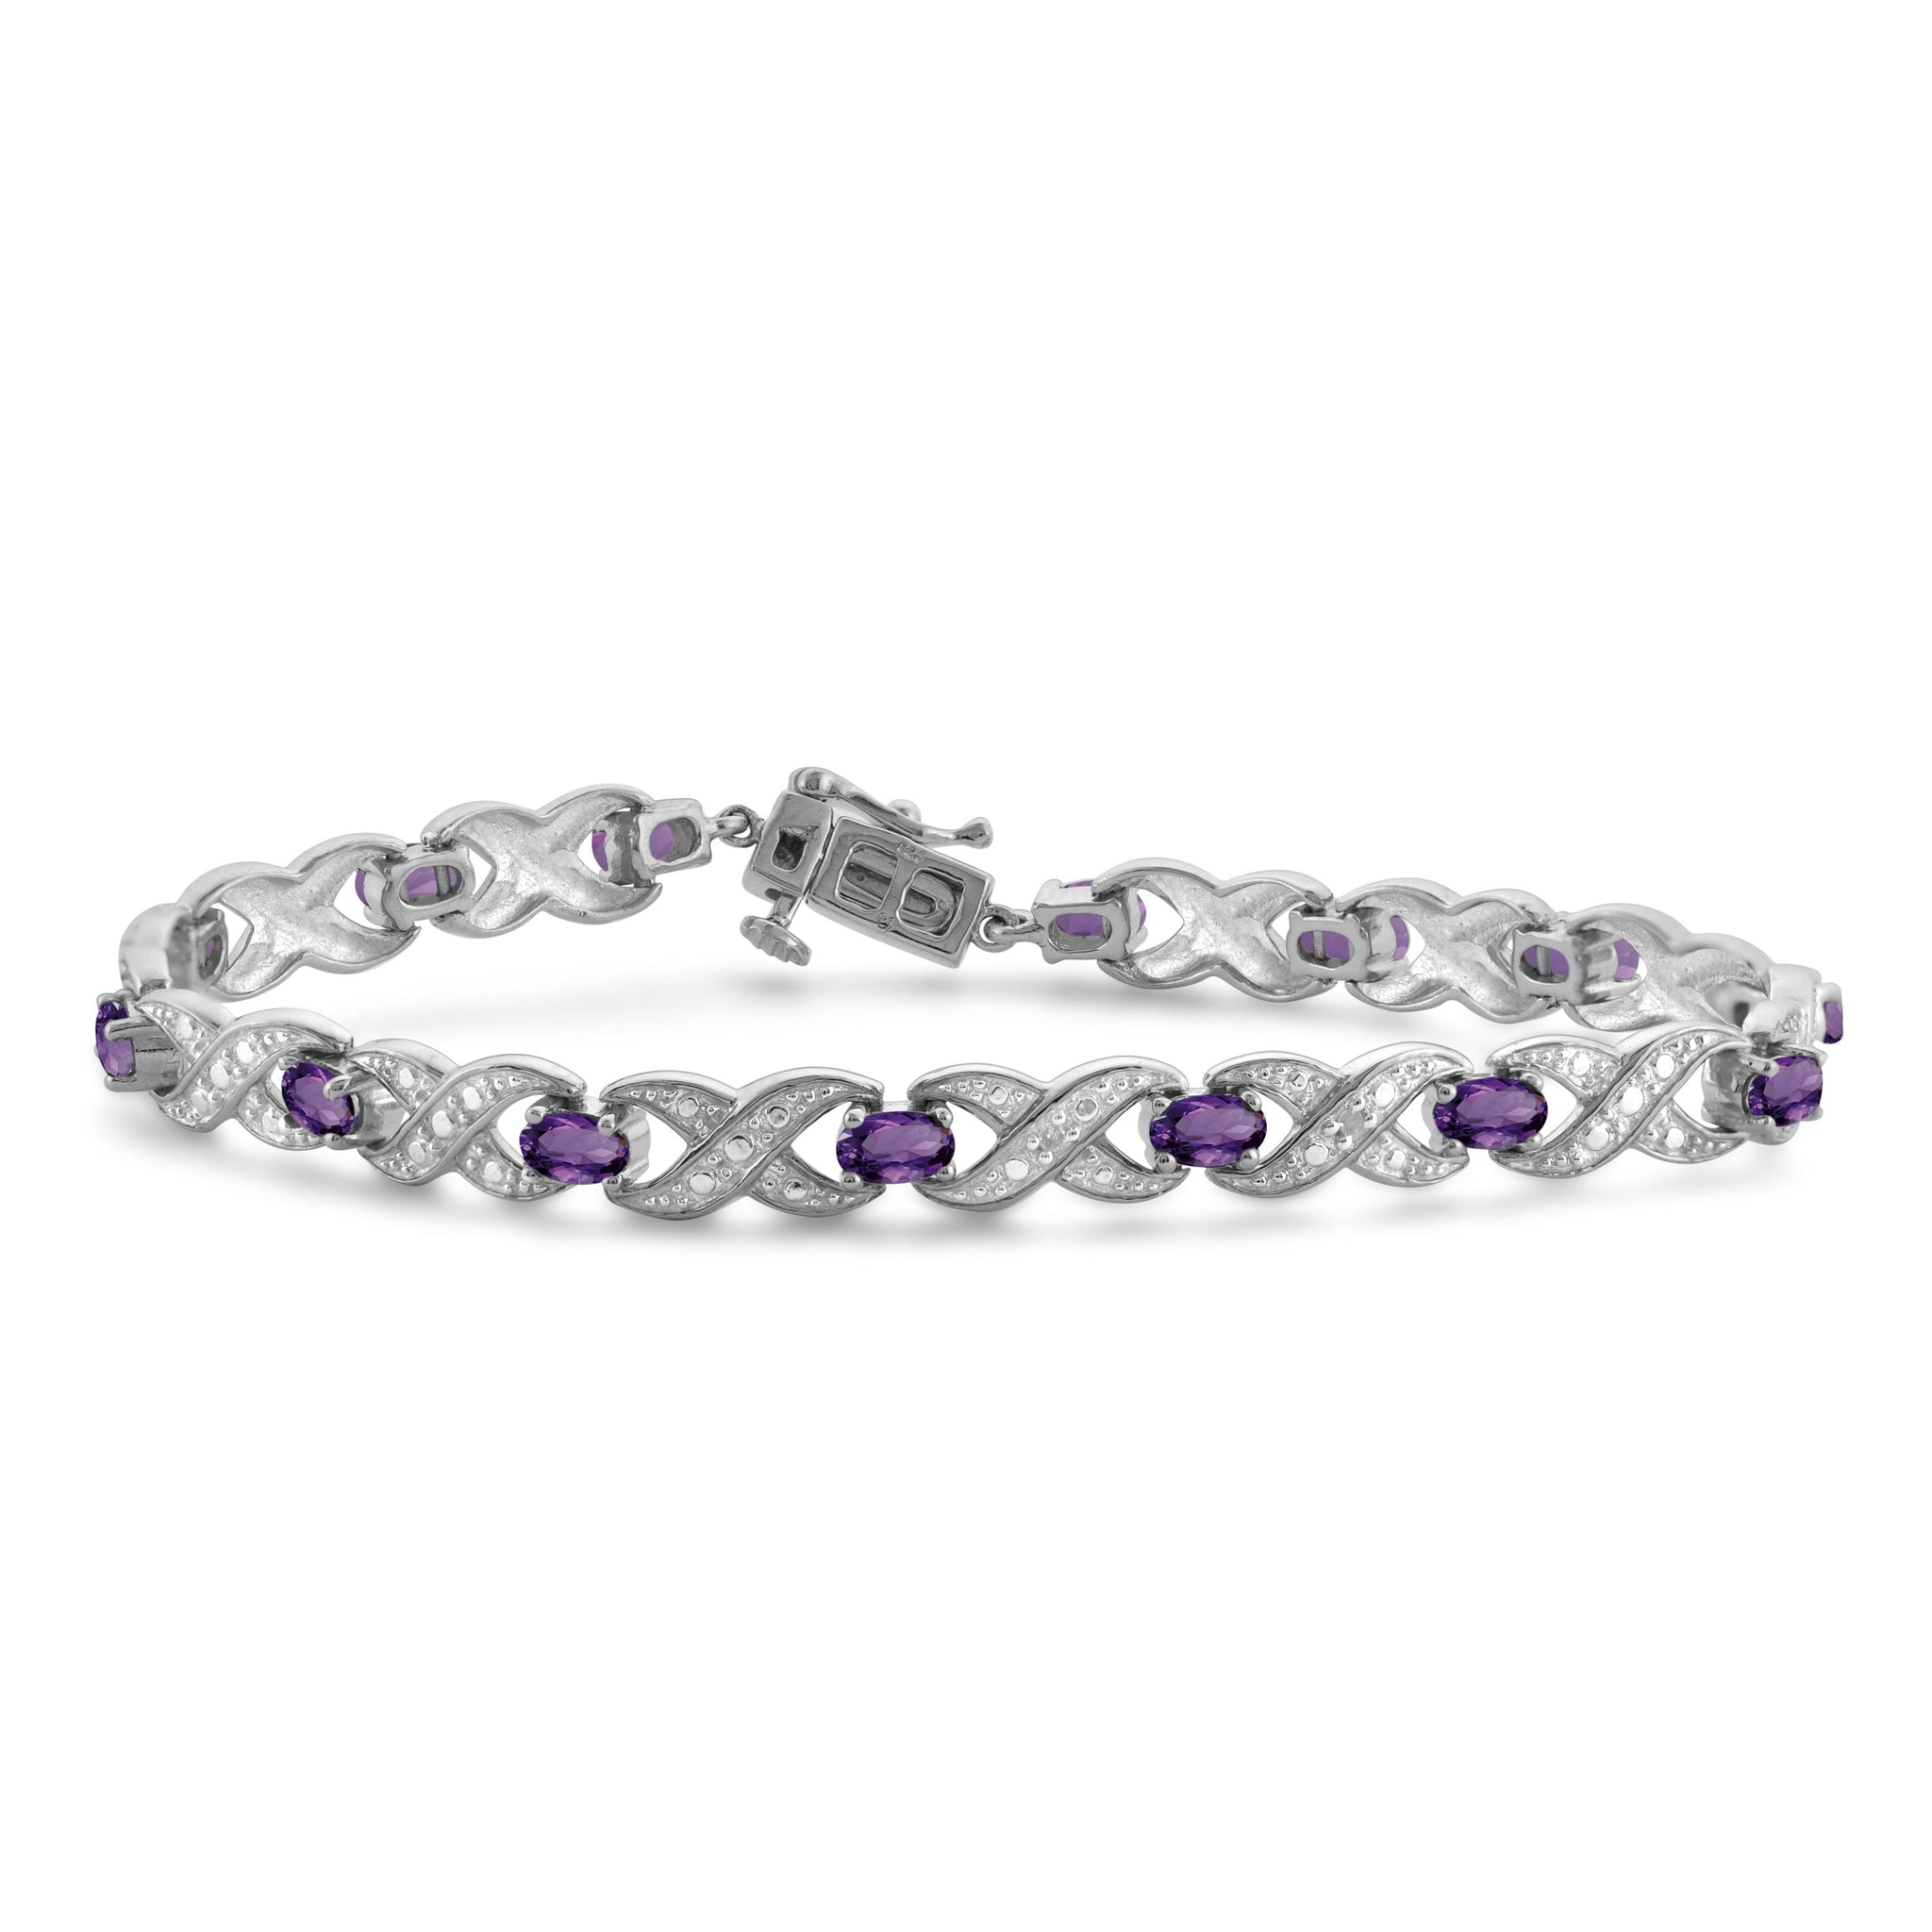 JewelonFire 3 1/5 Carat T.G.W. Amethyst And White Diamond Accent Sterling Silver Bracelet - Assorted Colors